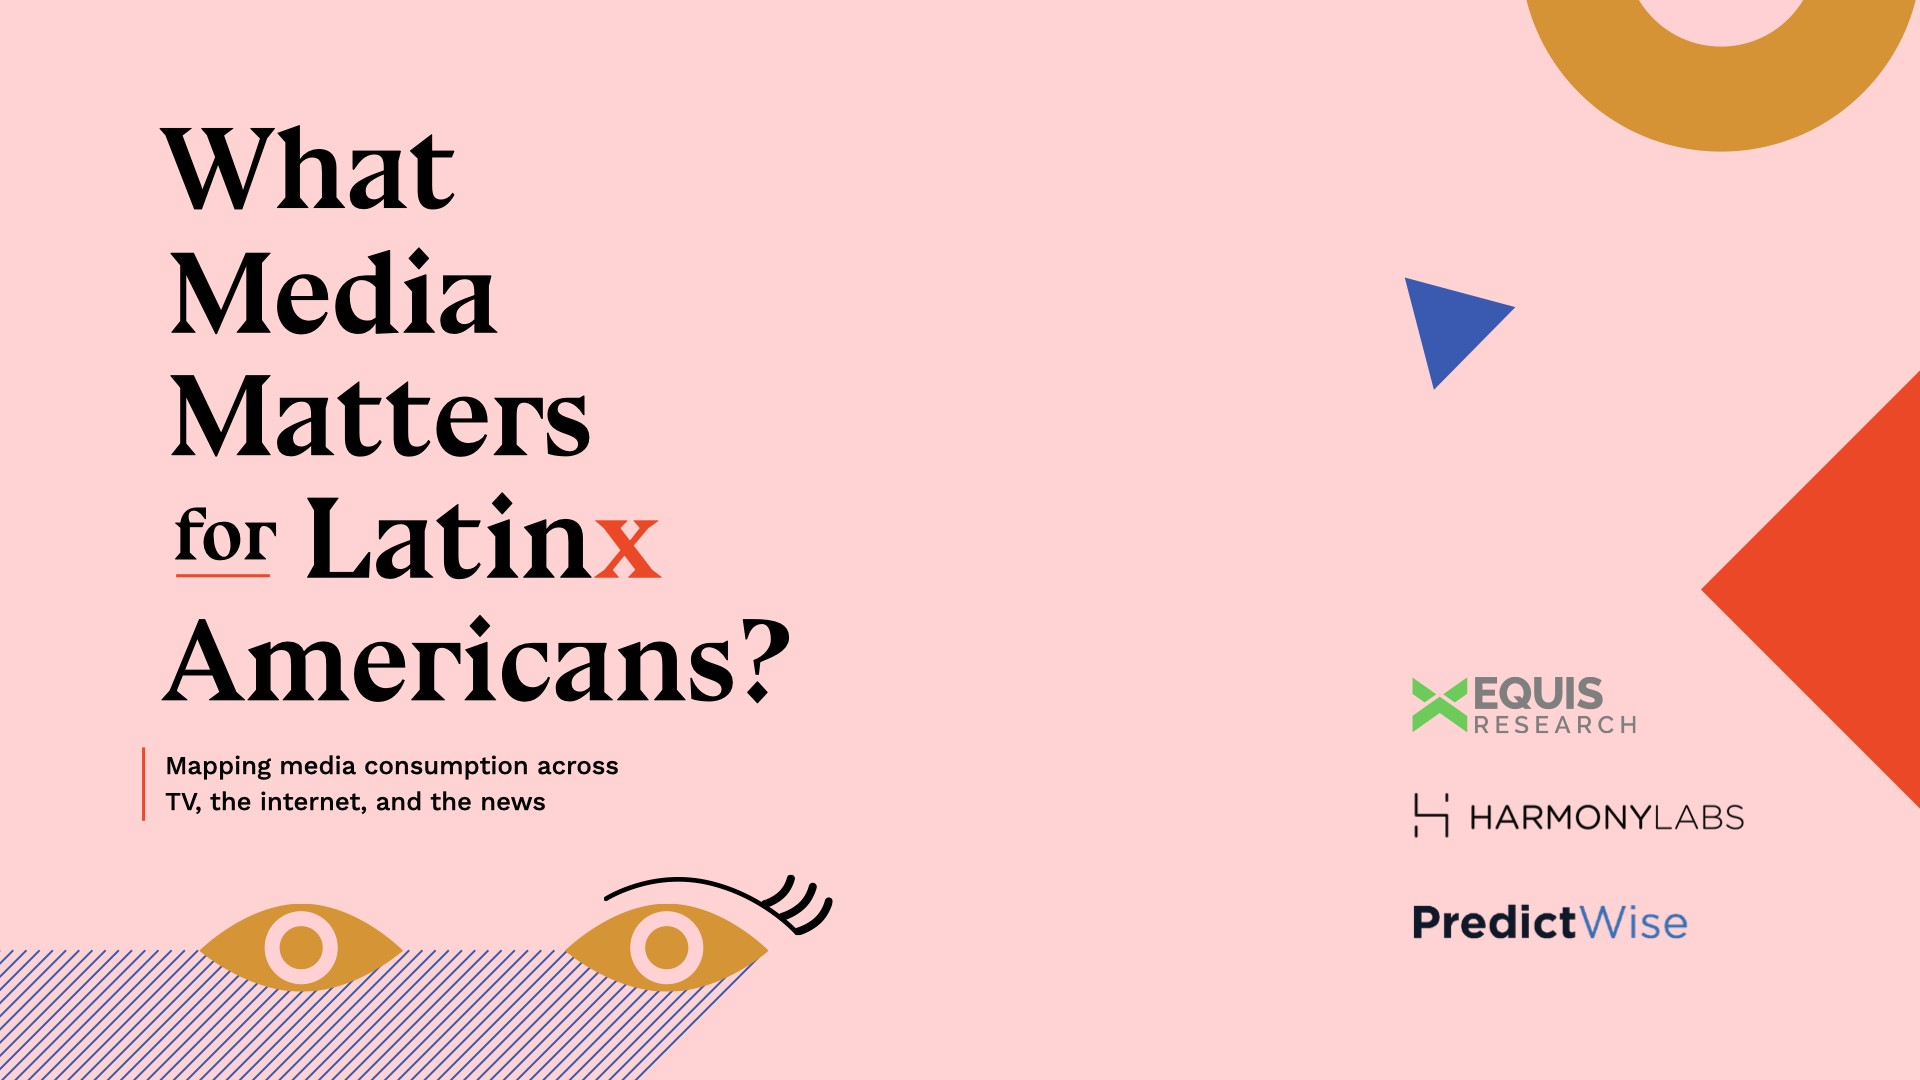 Mapping media consumption across TV, online, and the news for Latinx Americans.